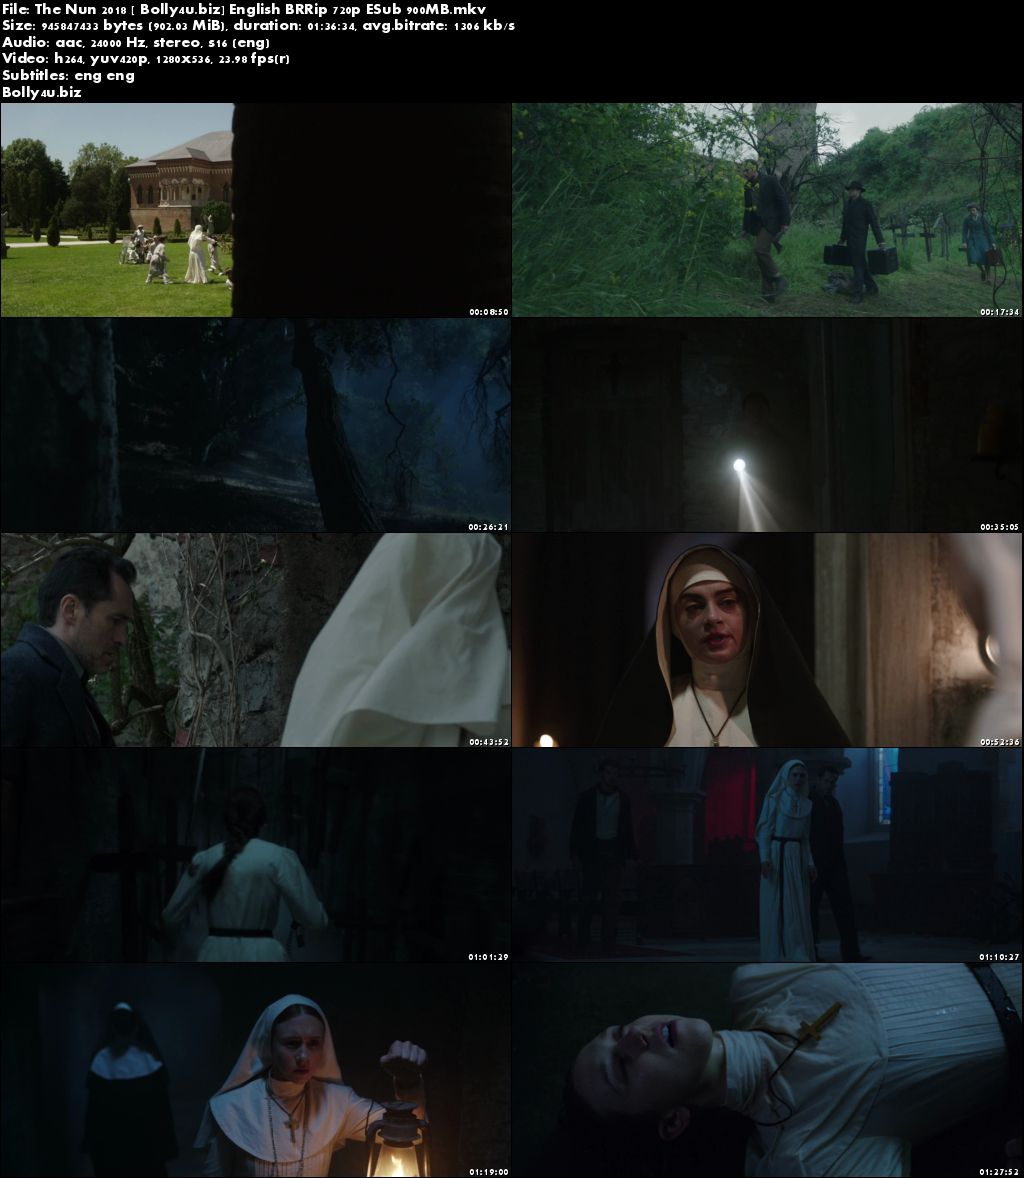 The Nun 2018 BRRip 900Mb English 720p ESub Download